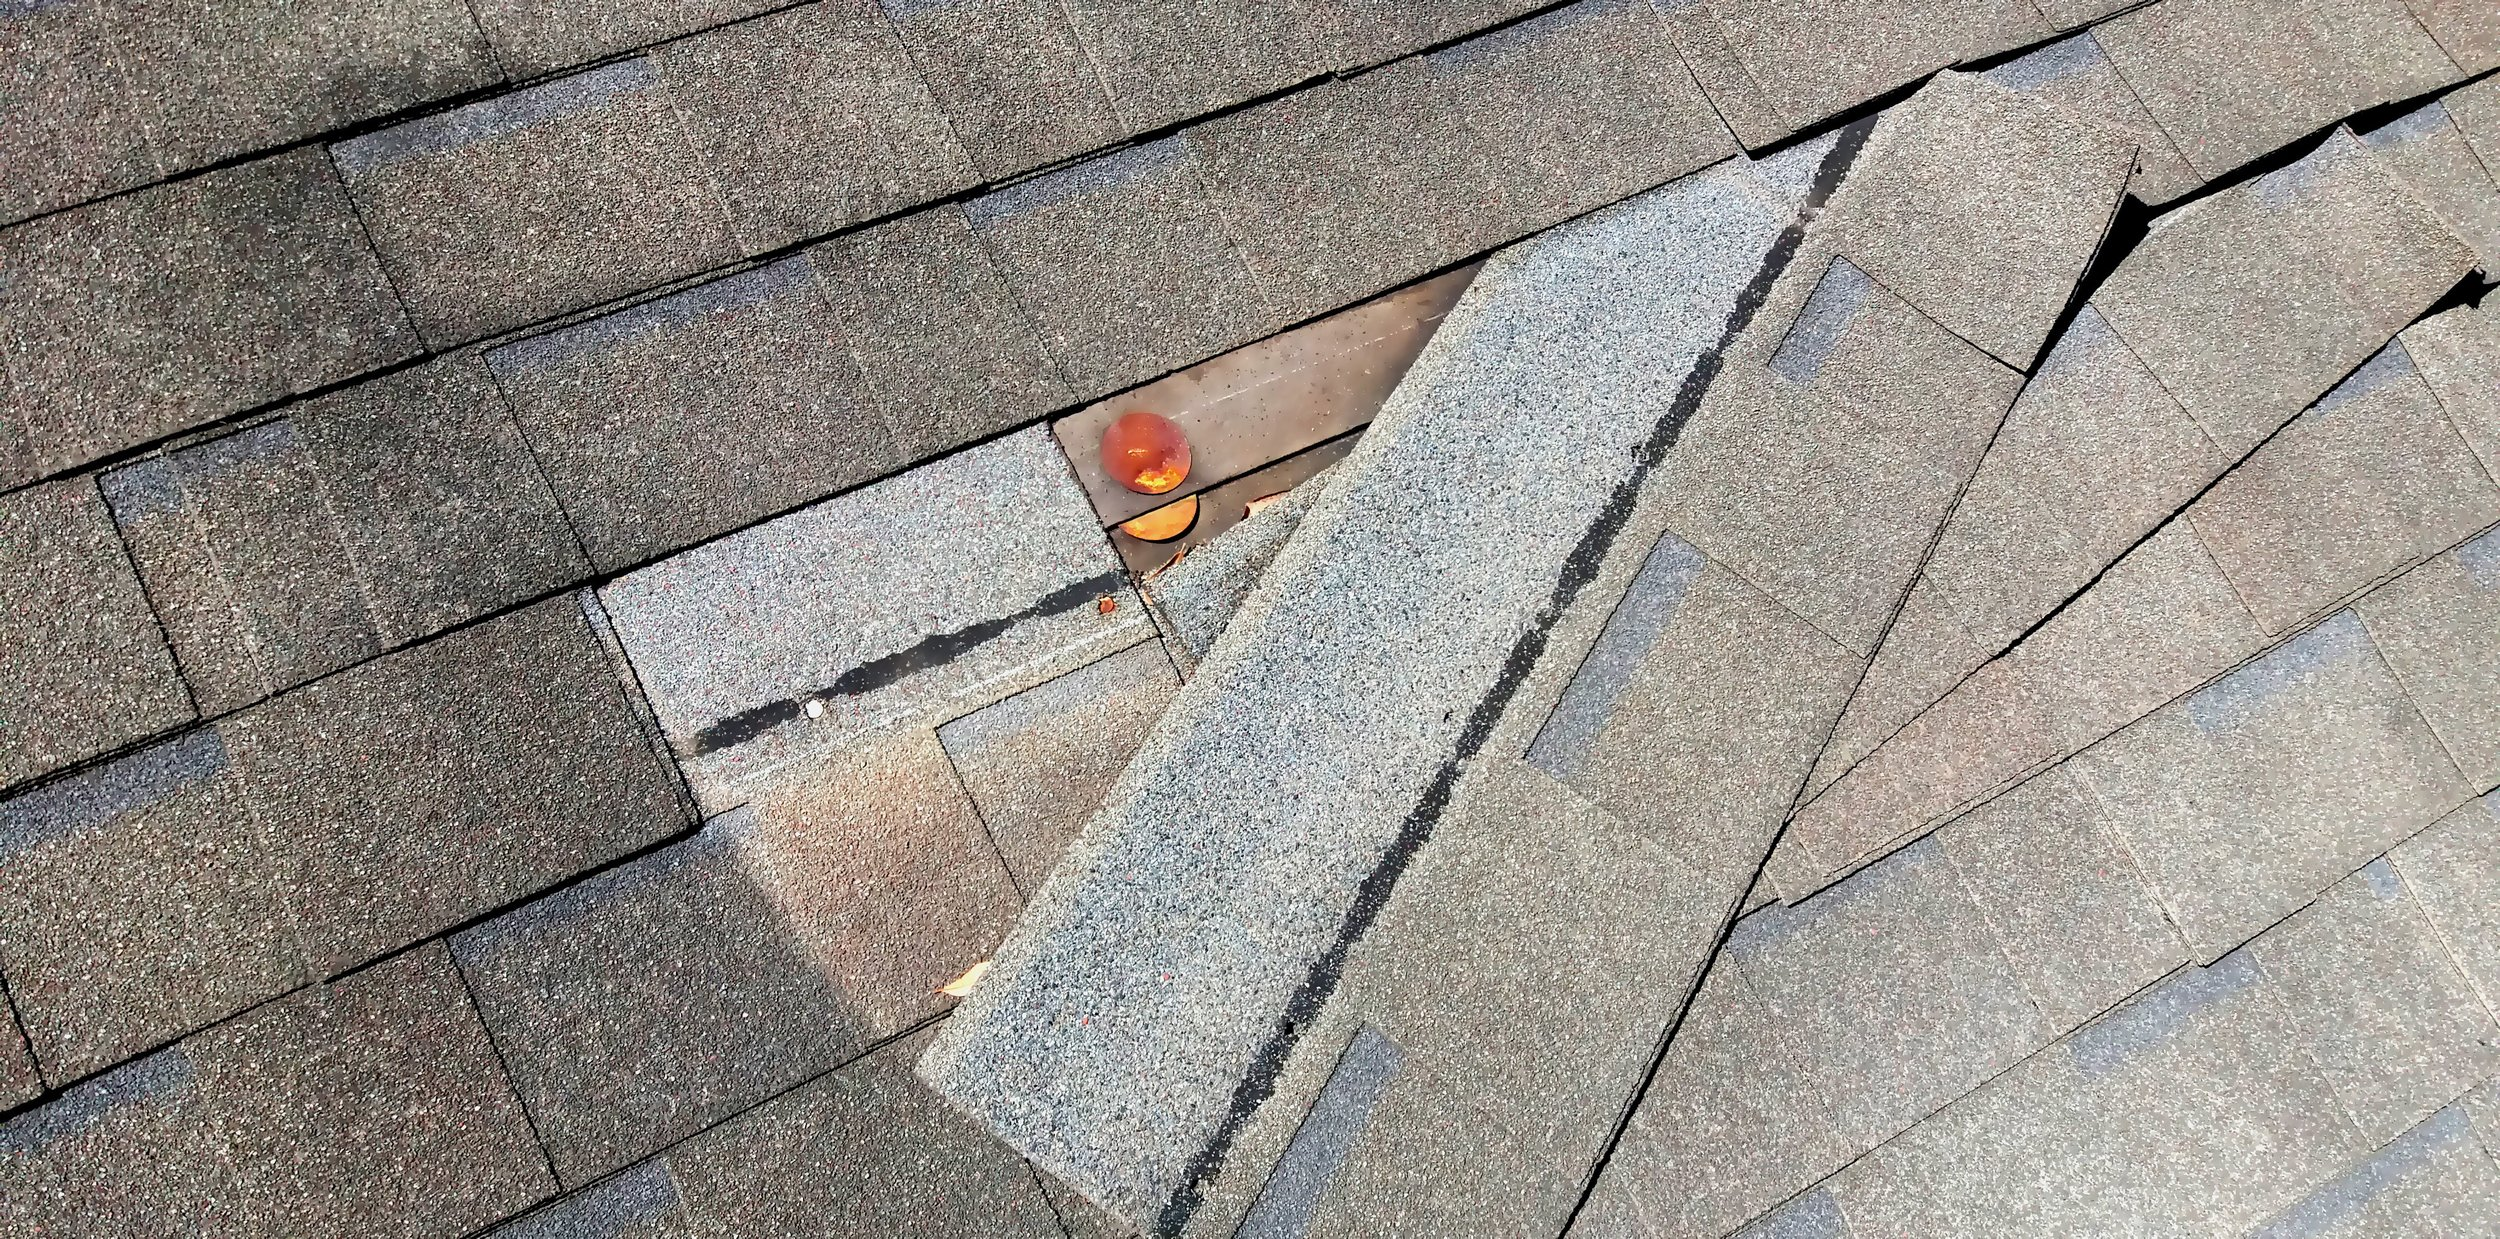 roof-roof-repair-roofer-674668.jpg